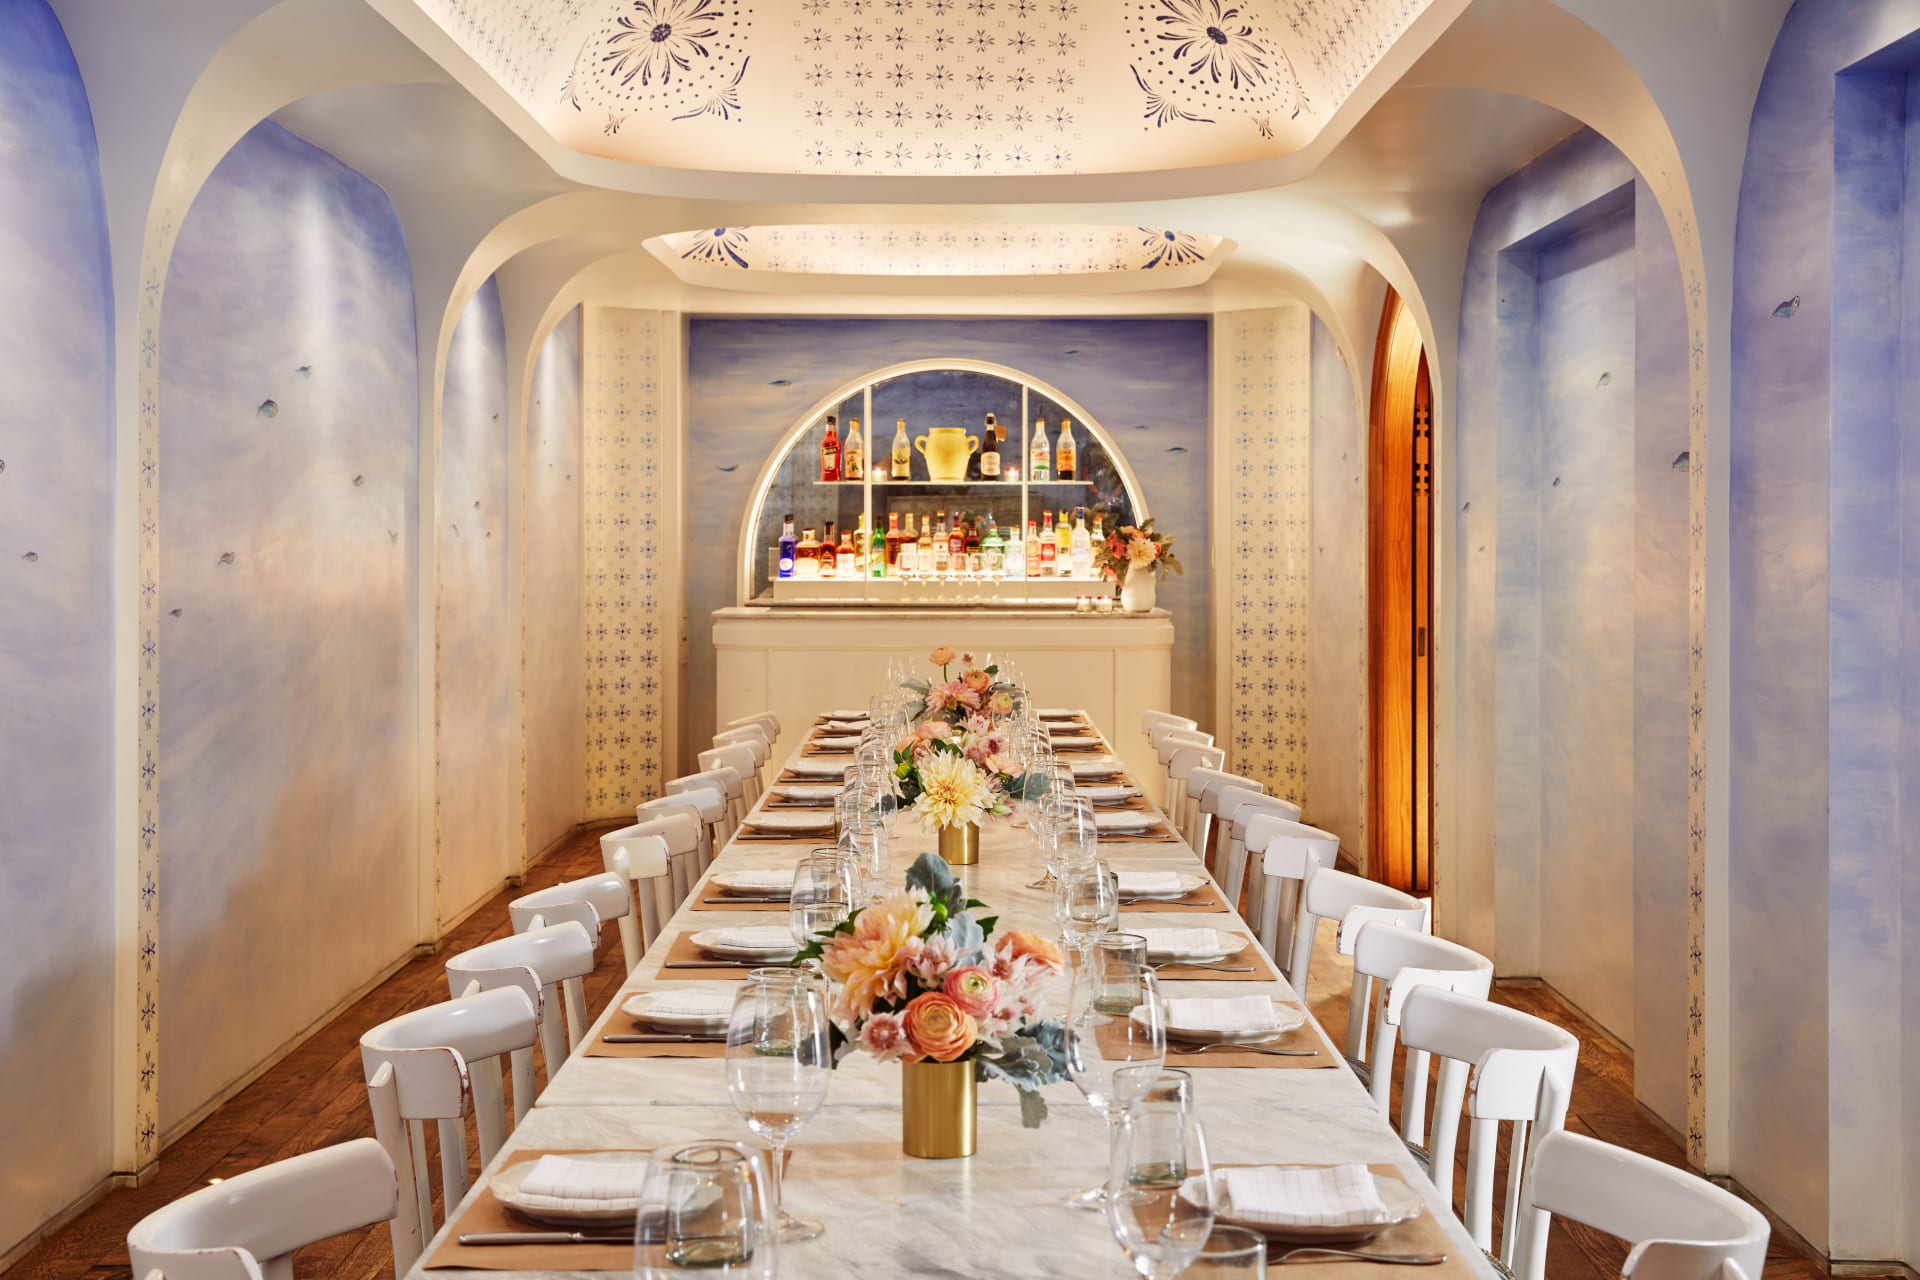 Leuca Private Dining Room